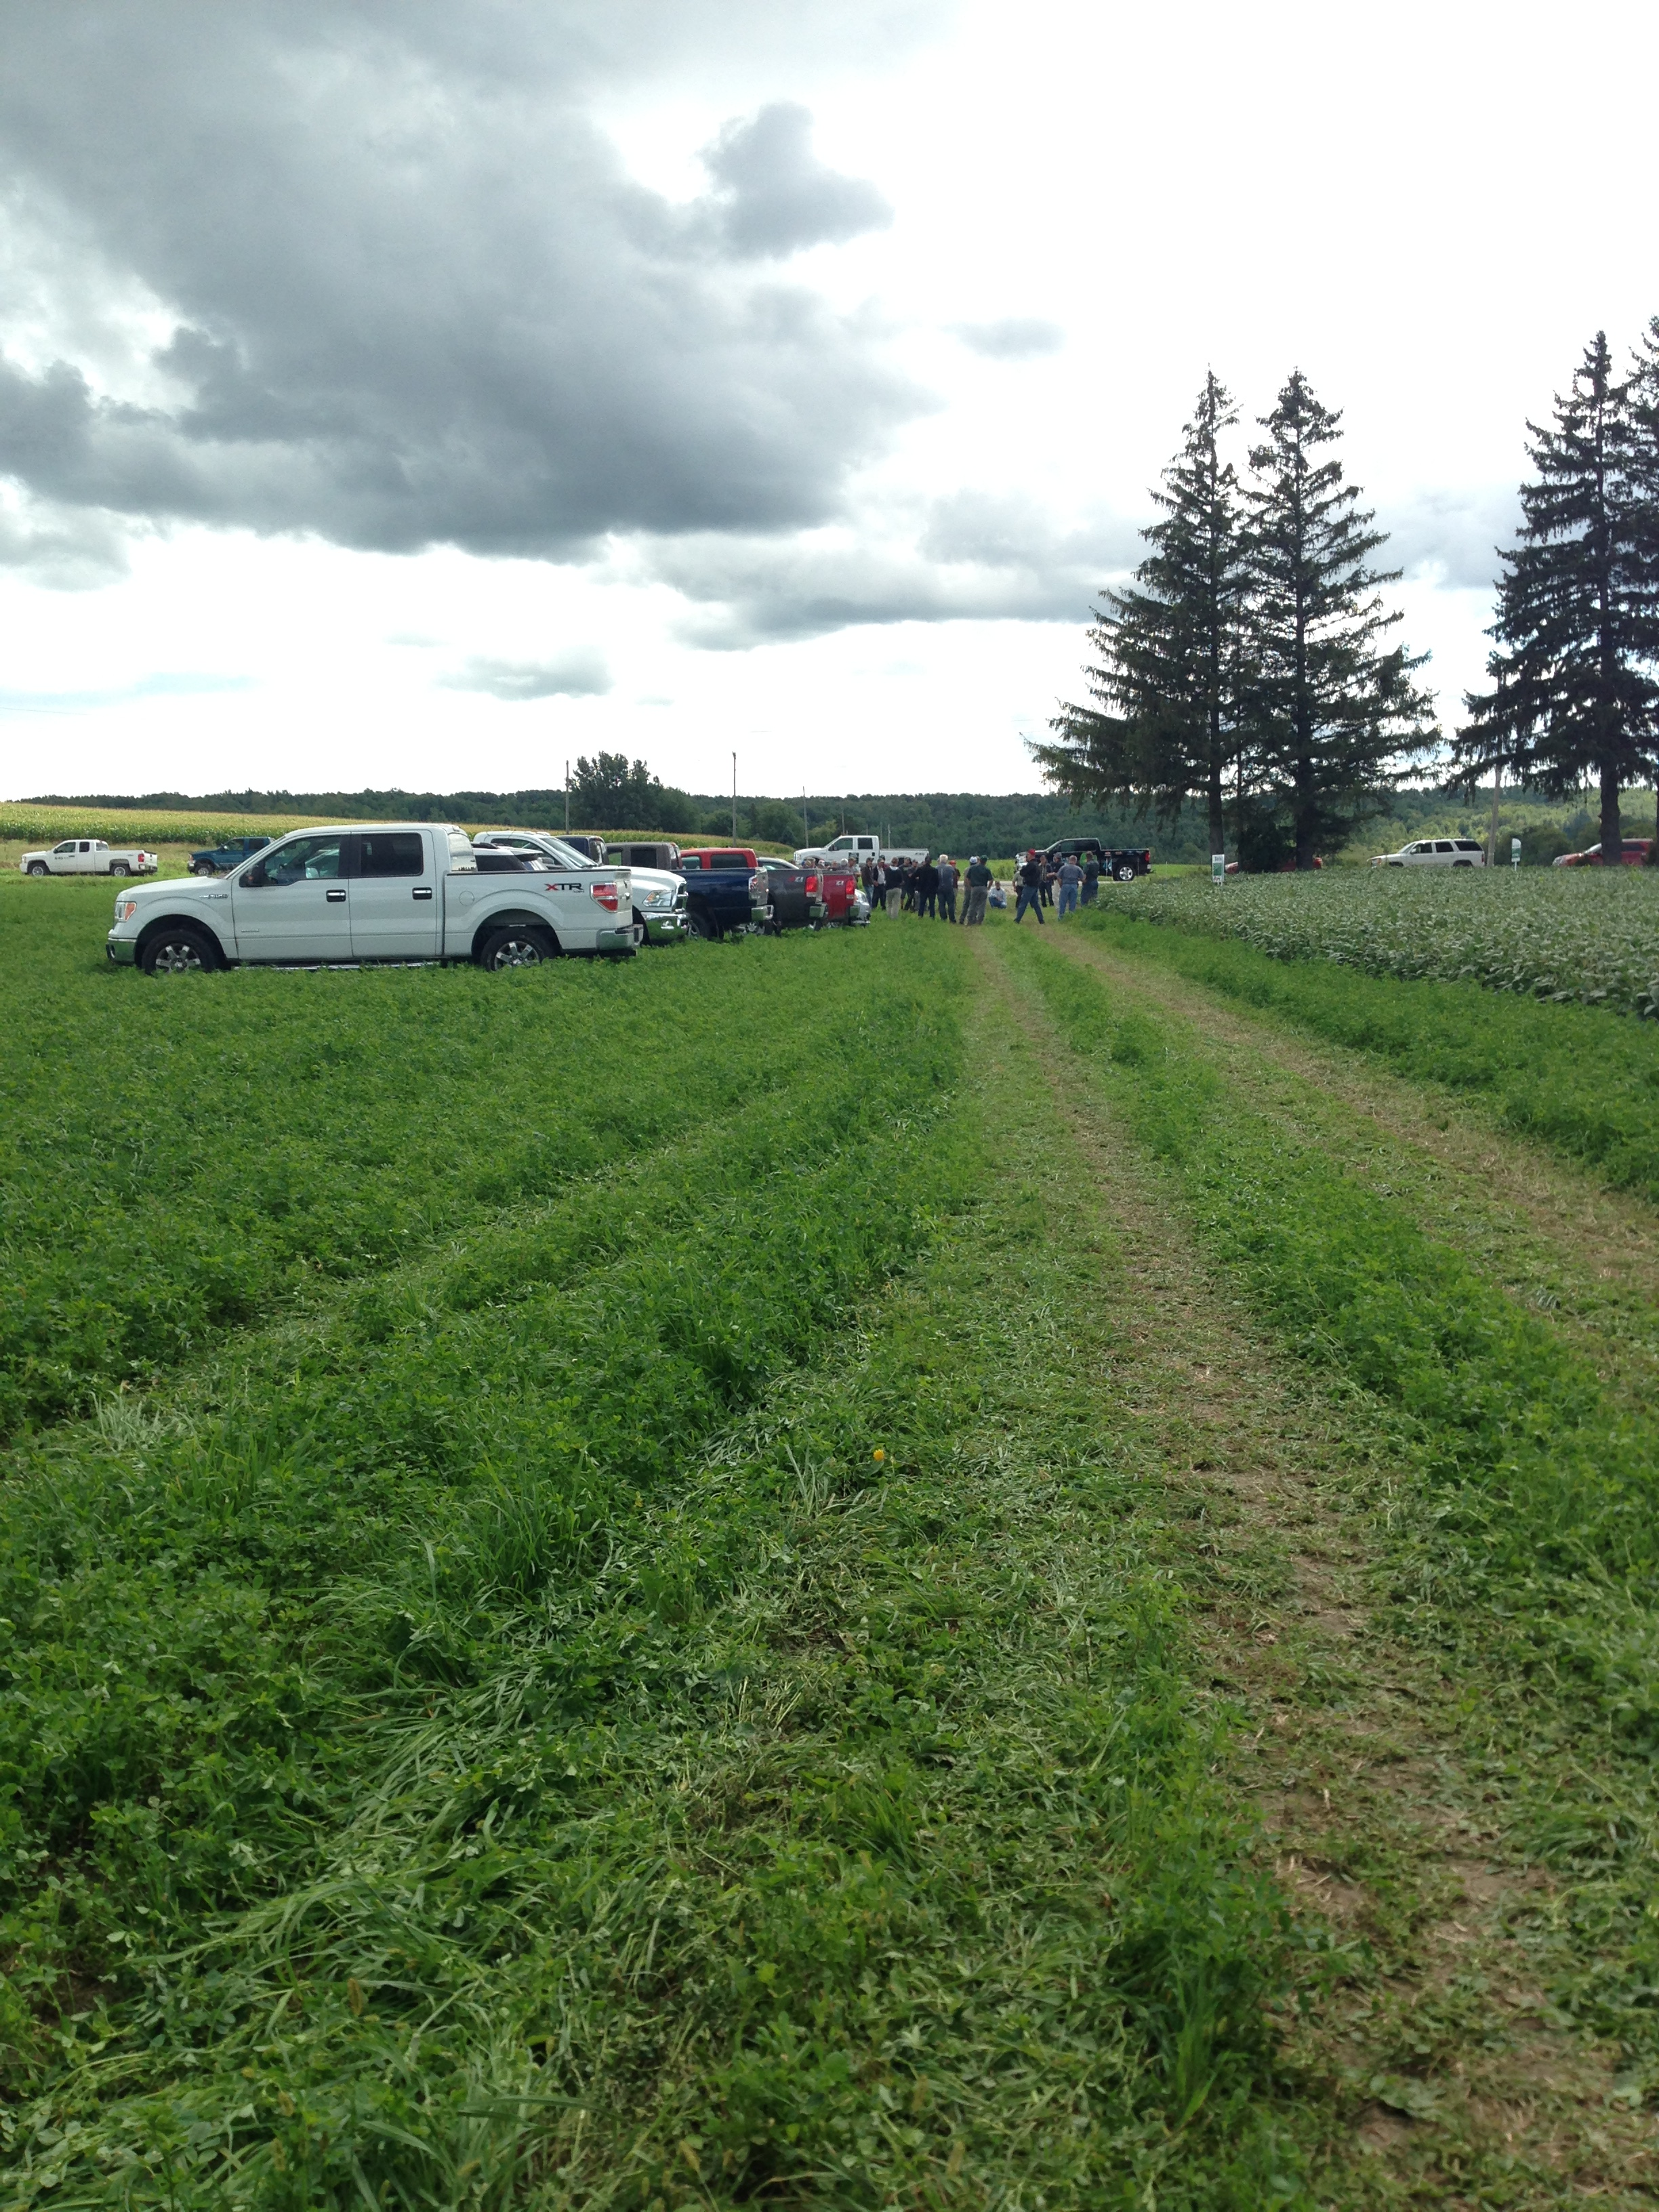 Crowd gathered at Woof's farm